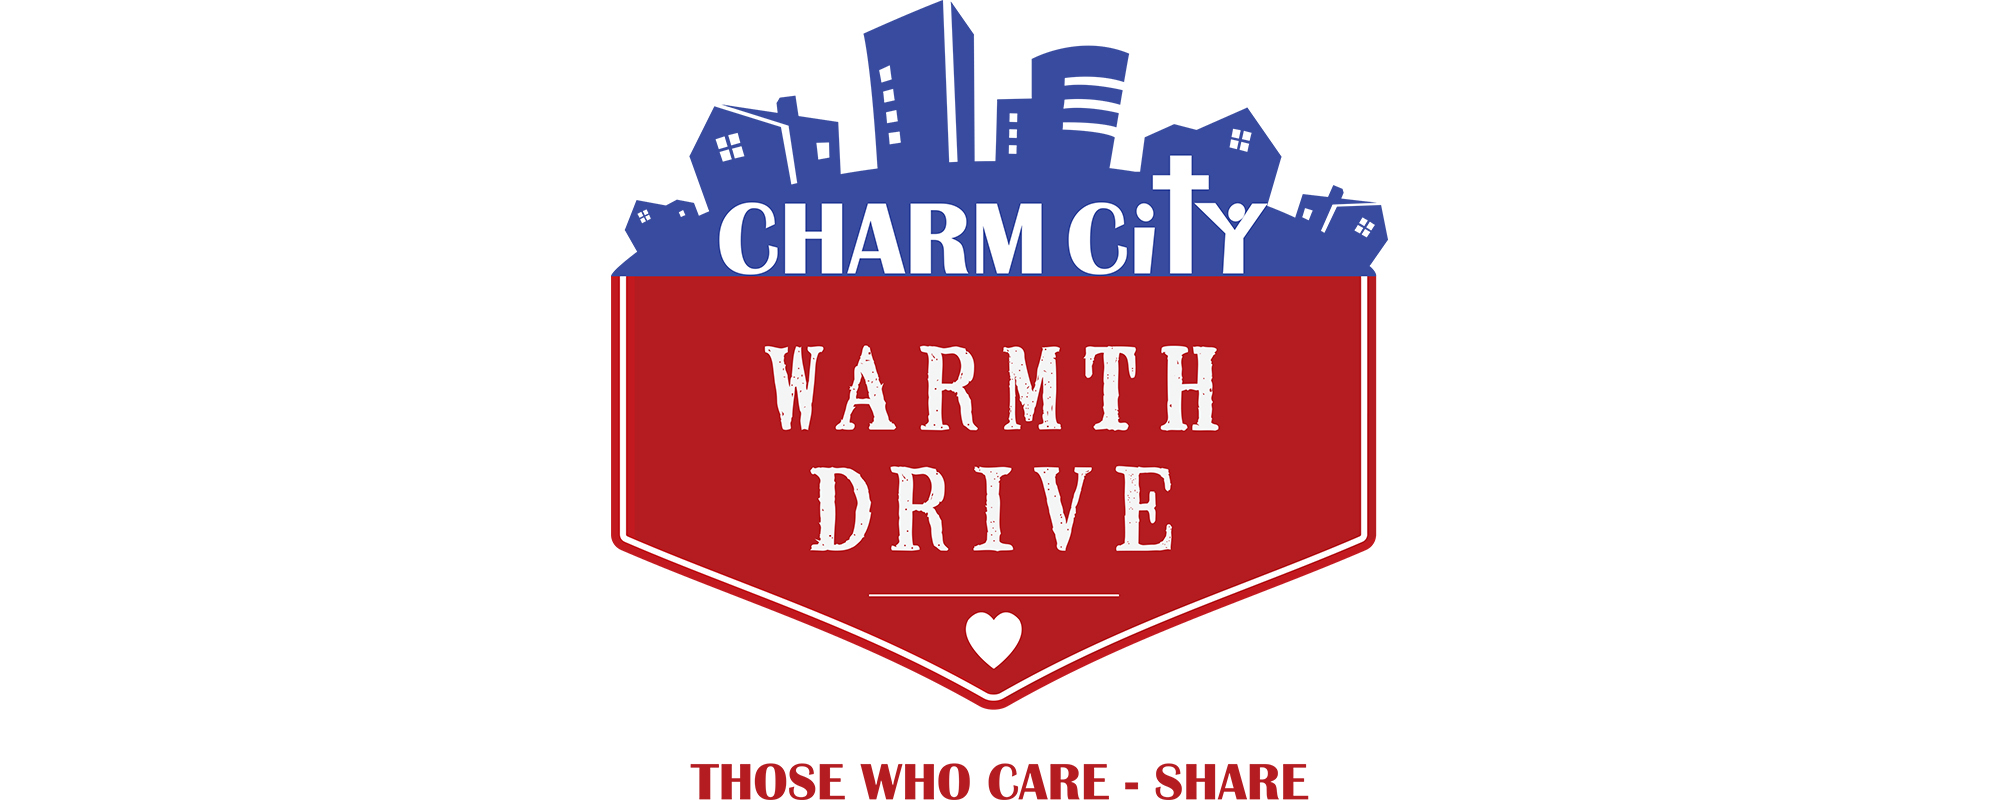 Athletic Training Collecting Items For Charm City Warmth Drive